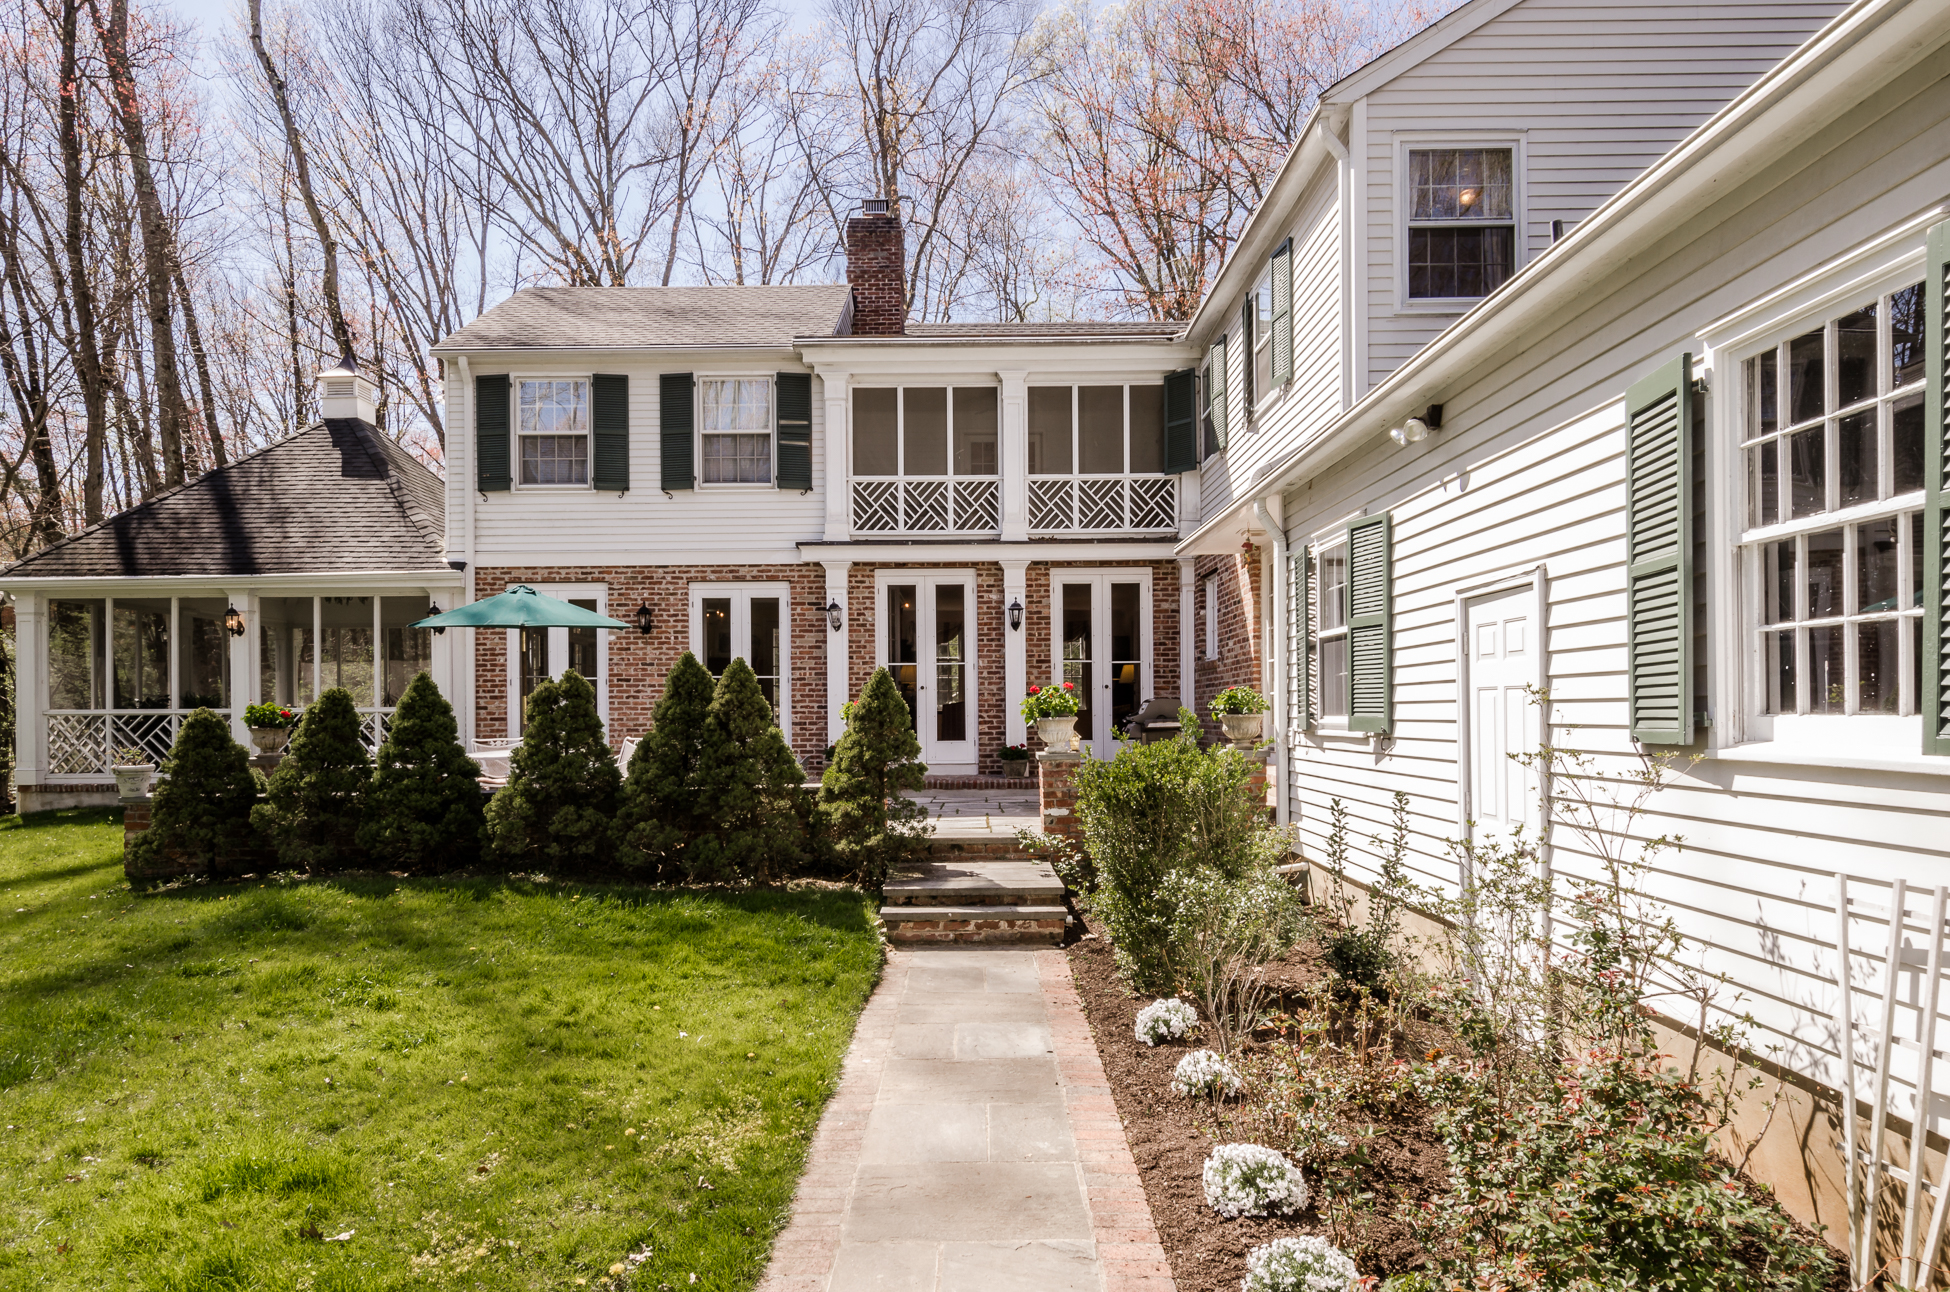 Additional photo for property listing at Gracious Southern Flair in a Tree-Lined Setting 56 Finley Road Princeton, Nueva Jersey 08540 Estados Unidos